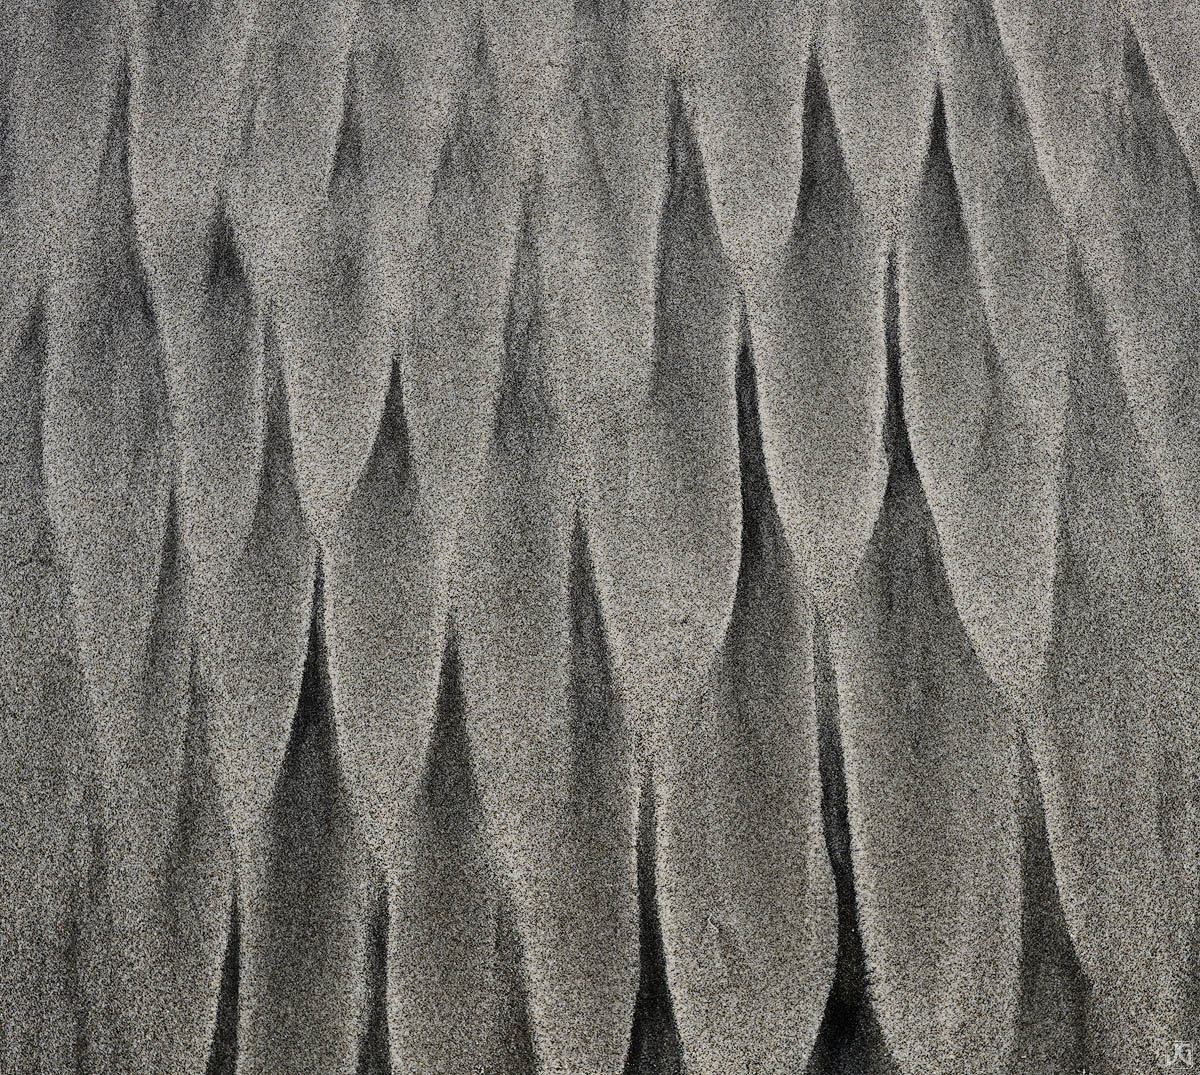 California, sand, beach, dunes, desert, patterns, photo